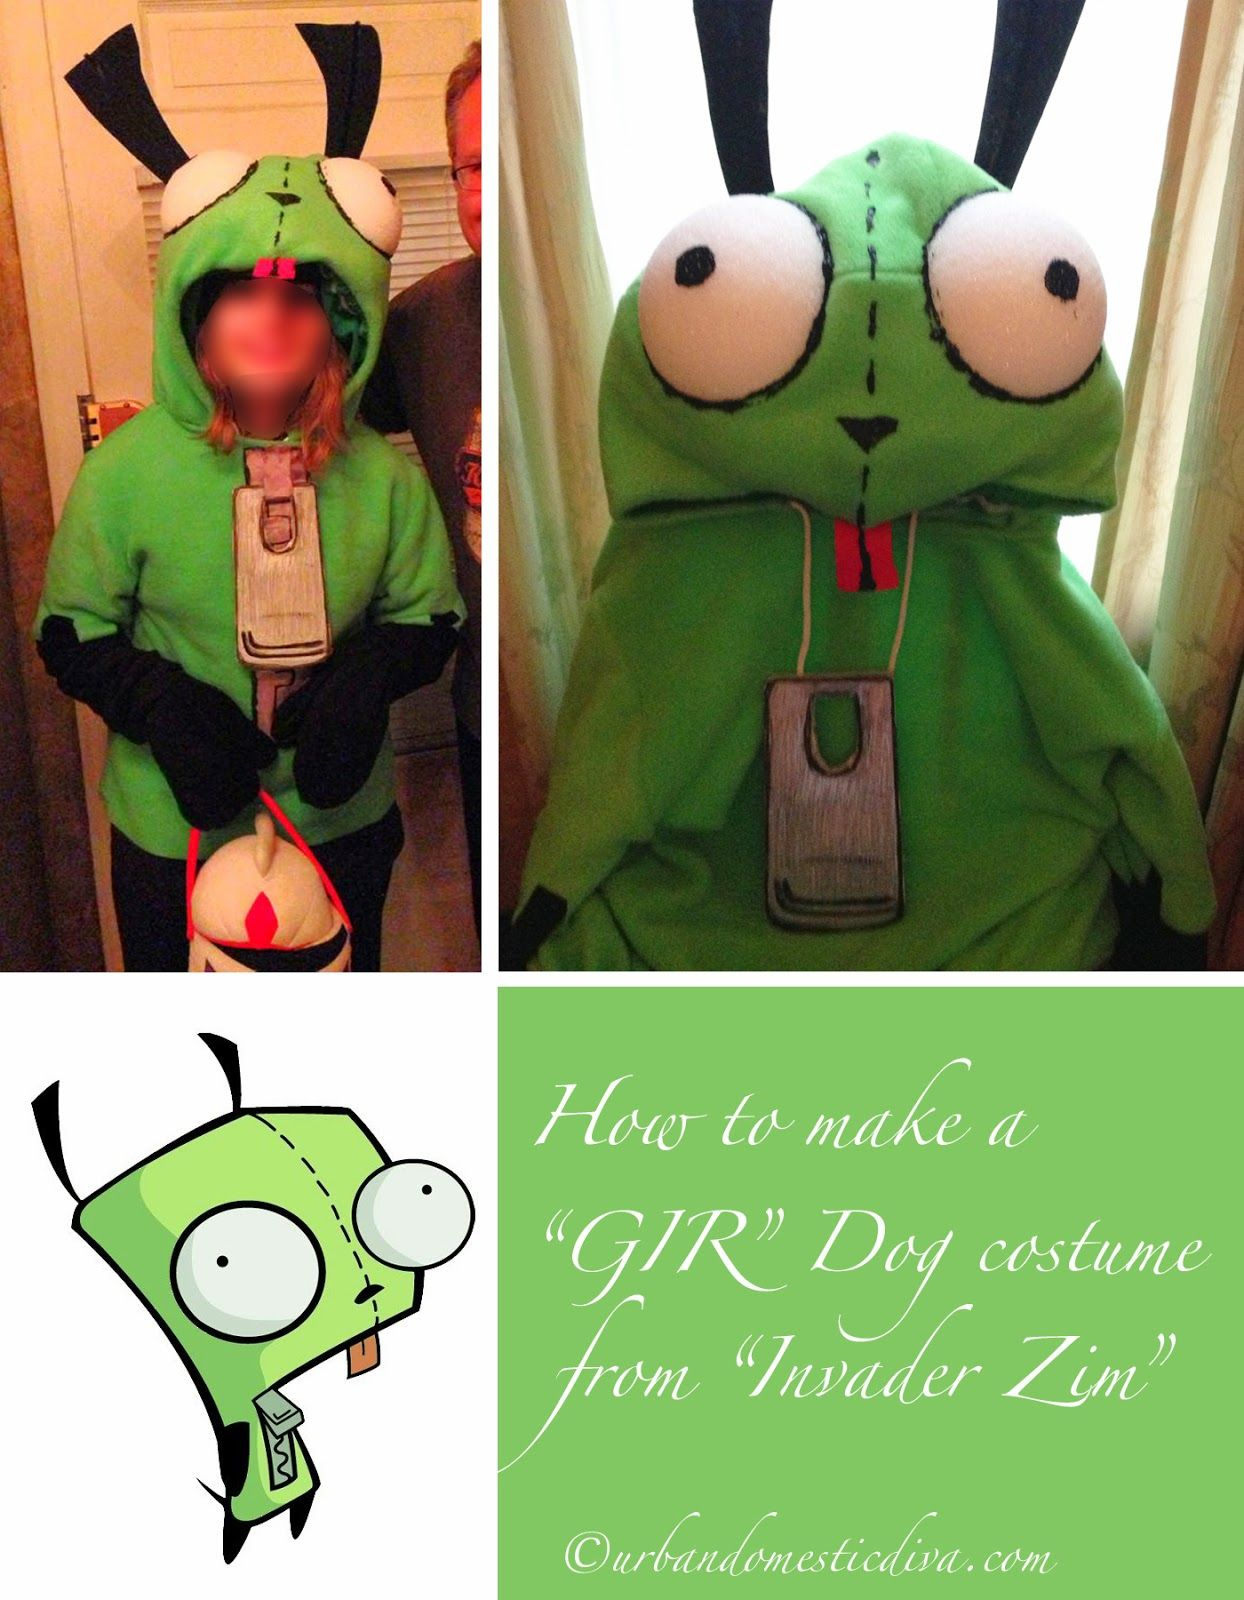 how to make a gir dog costume from the show invader zim by hand for halloween - Gir Halloween Costumes